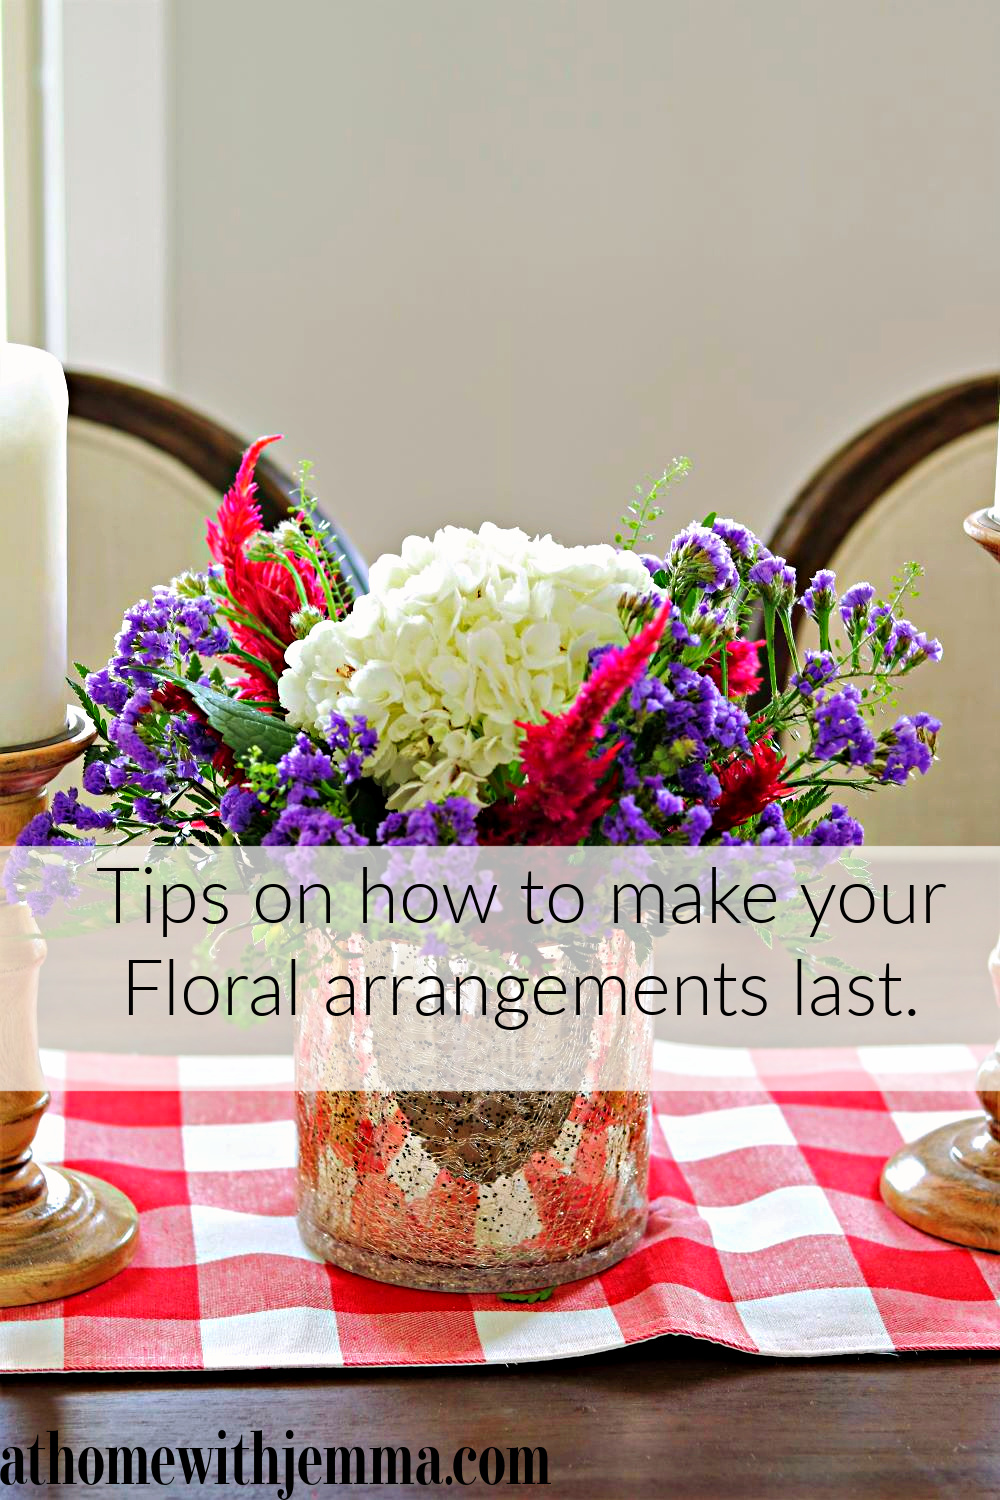 floral-arranging-guidelines-tips-long-lasting-athomewithjemma